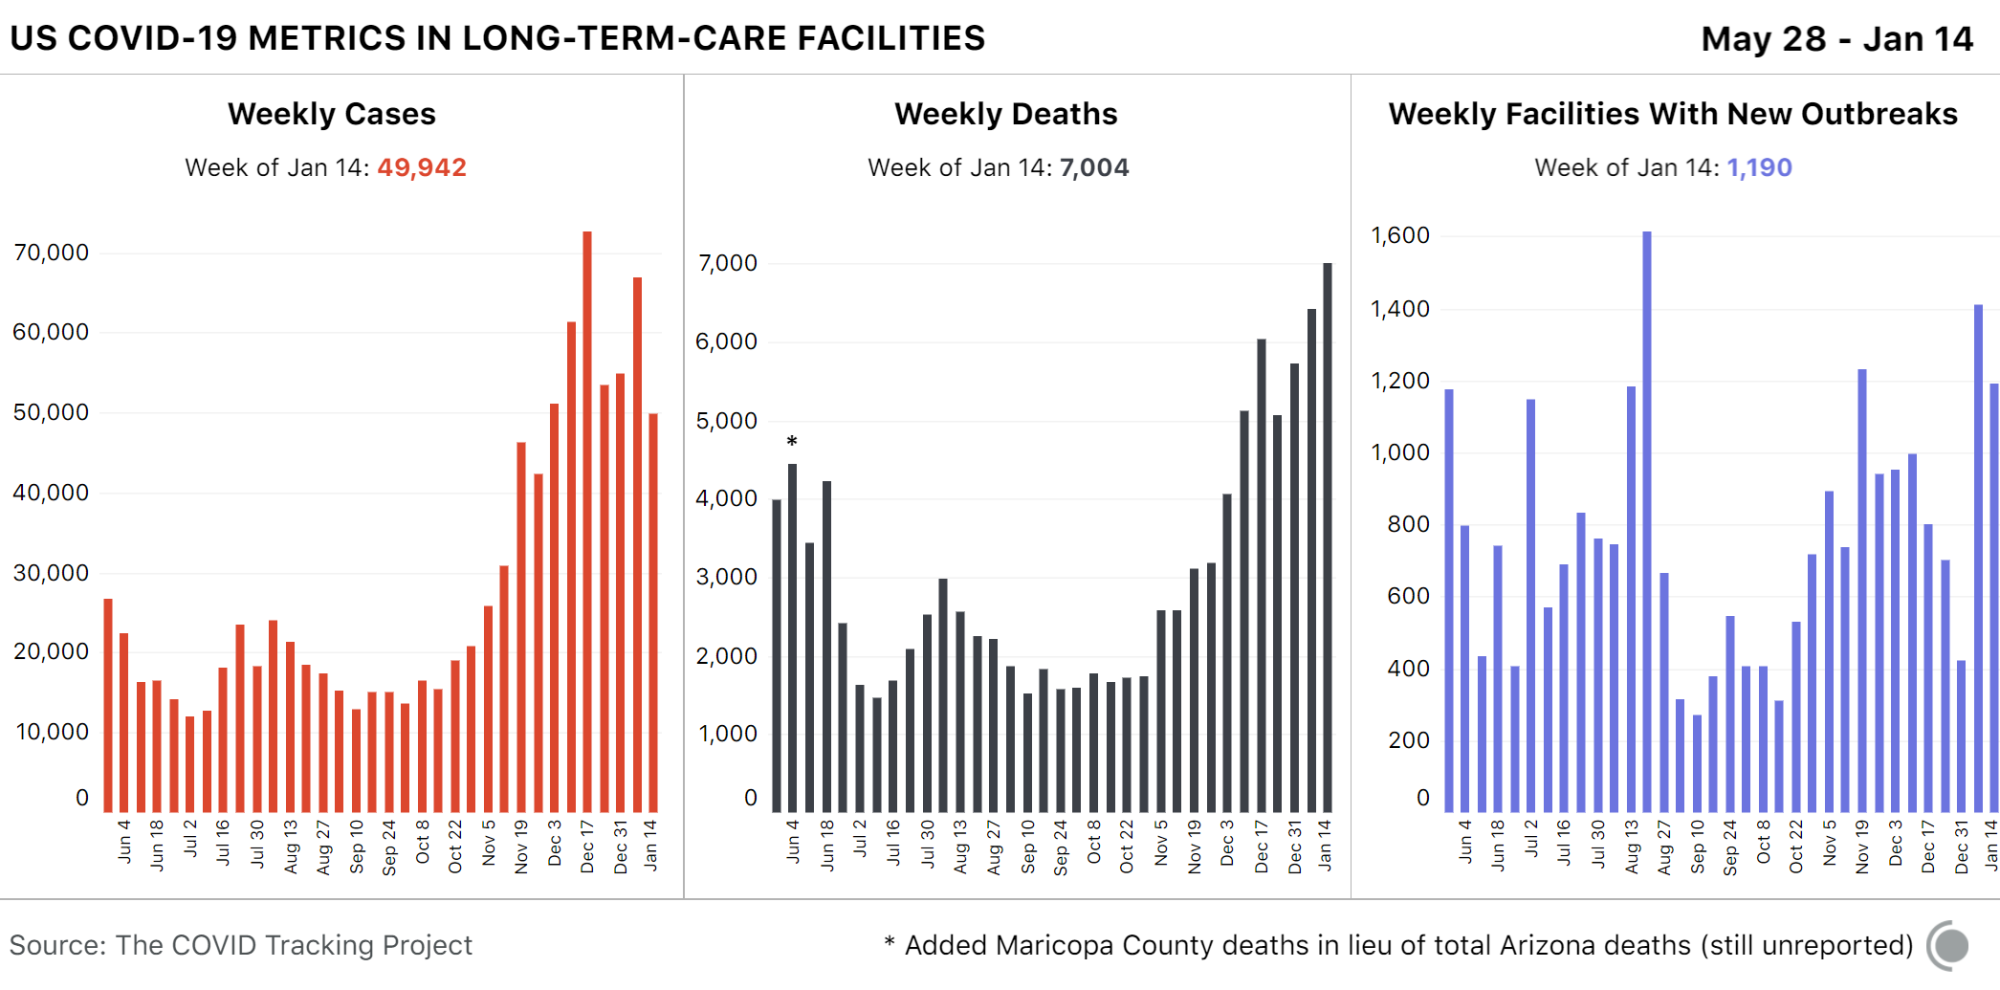 3 weekly bar charts showing COVID-19 metrics in long-term-care facilities in the US over time. New cases are down about 15,000 from the week prior, though deaths are still rising.